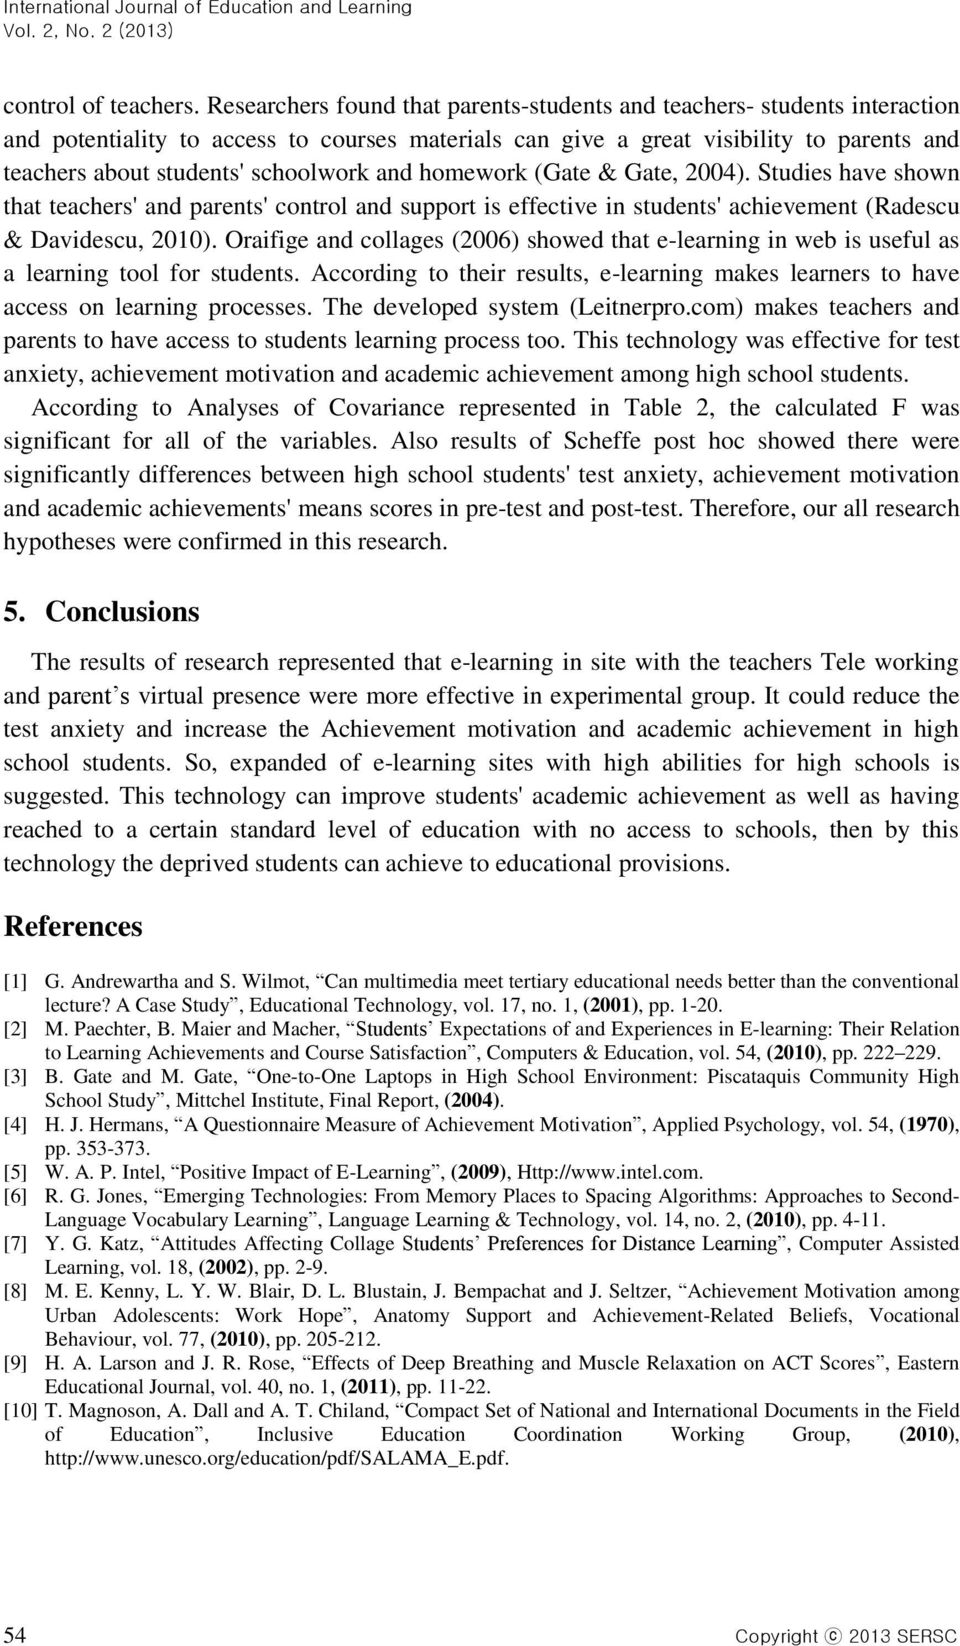 schoolwork and homework (Gate & Gate, 2004). Studies have shown that teachers' and parents' control and support is effective in students' achievement (Radescu & Davidescu, 2010).